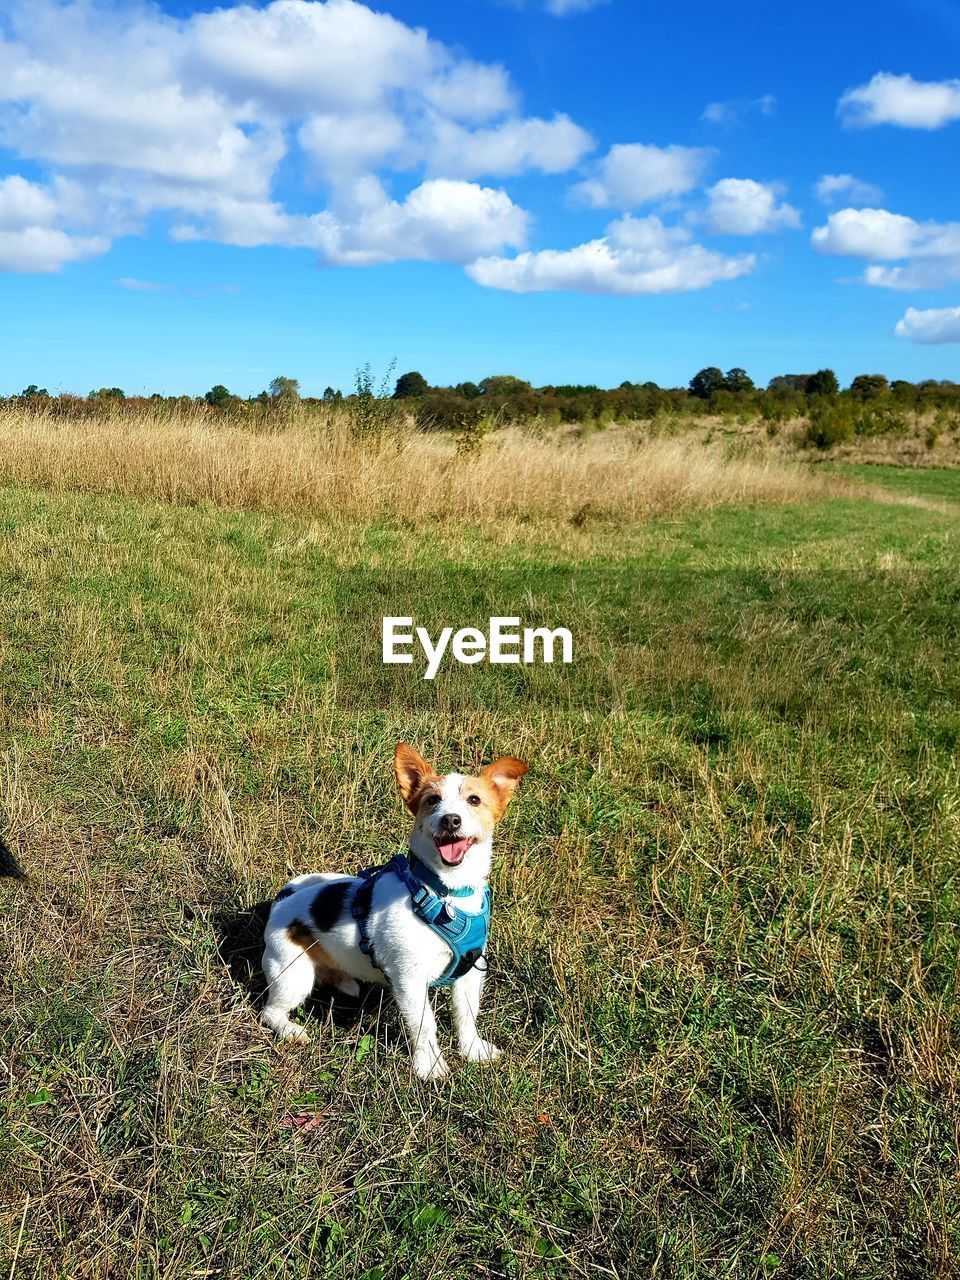 pets, domestic animals, domestic, one animal, canine, dog, mammal, field, land, animal themes, grass, animal, plant, landscape, vertebrate, nature, environment, sky, cloud - sky, day, no people, outdoors, purebred dog